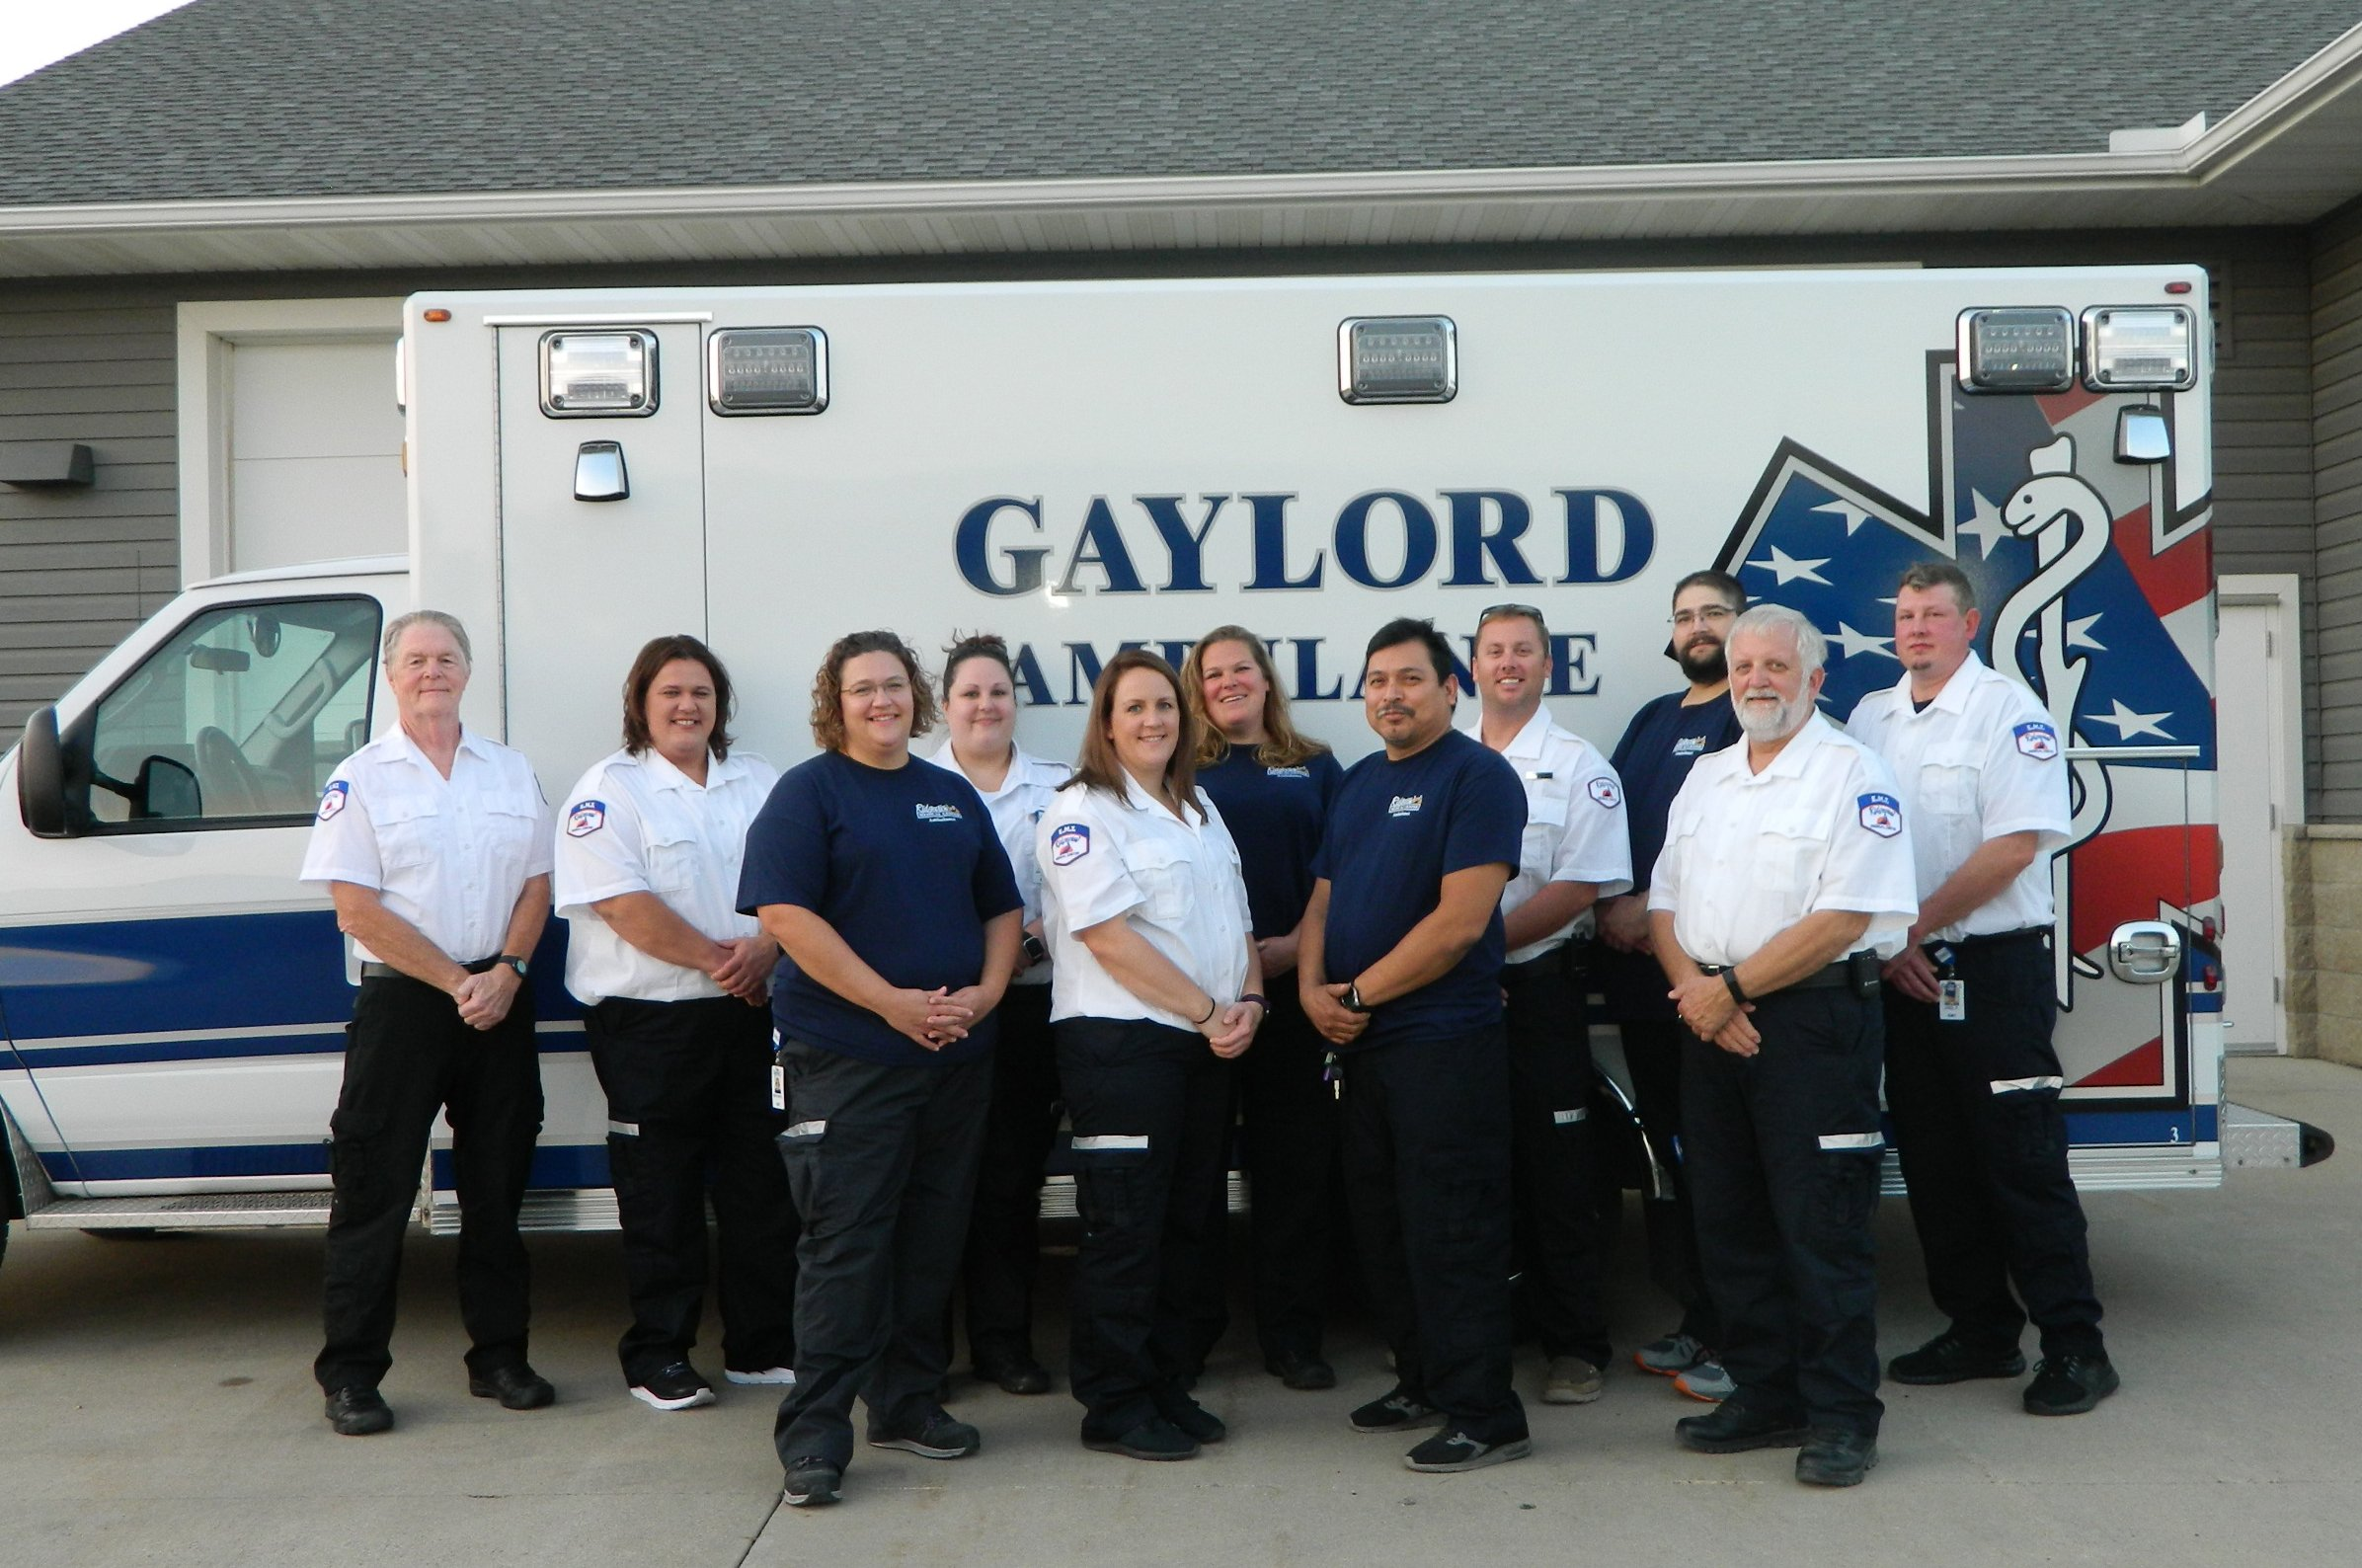 Photo of Gaylord Ridgeview Ambulance Staff standing in front of an ambulance